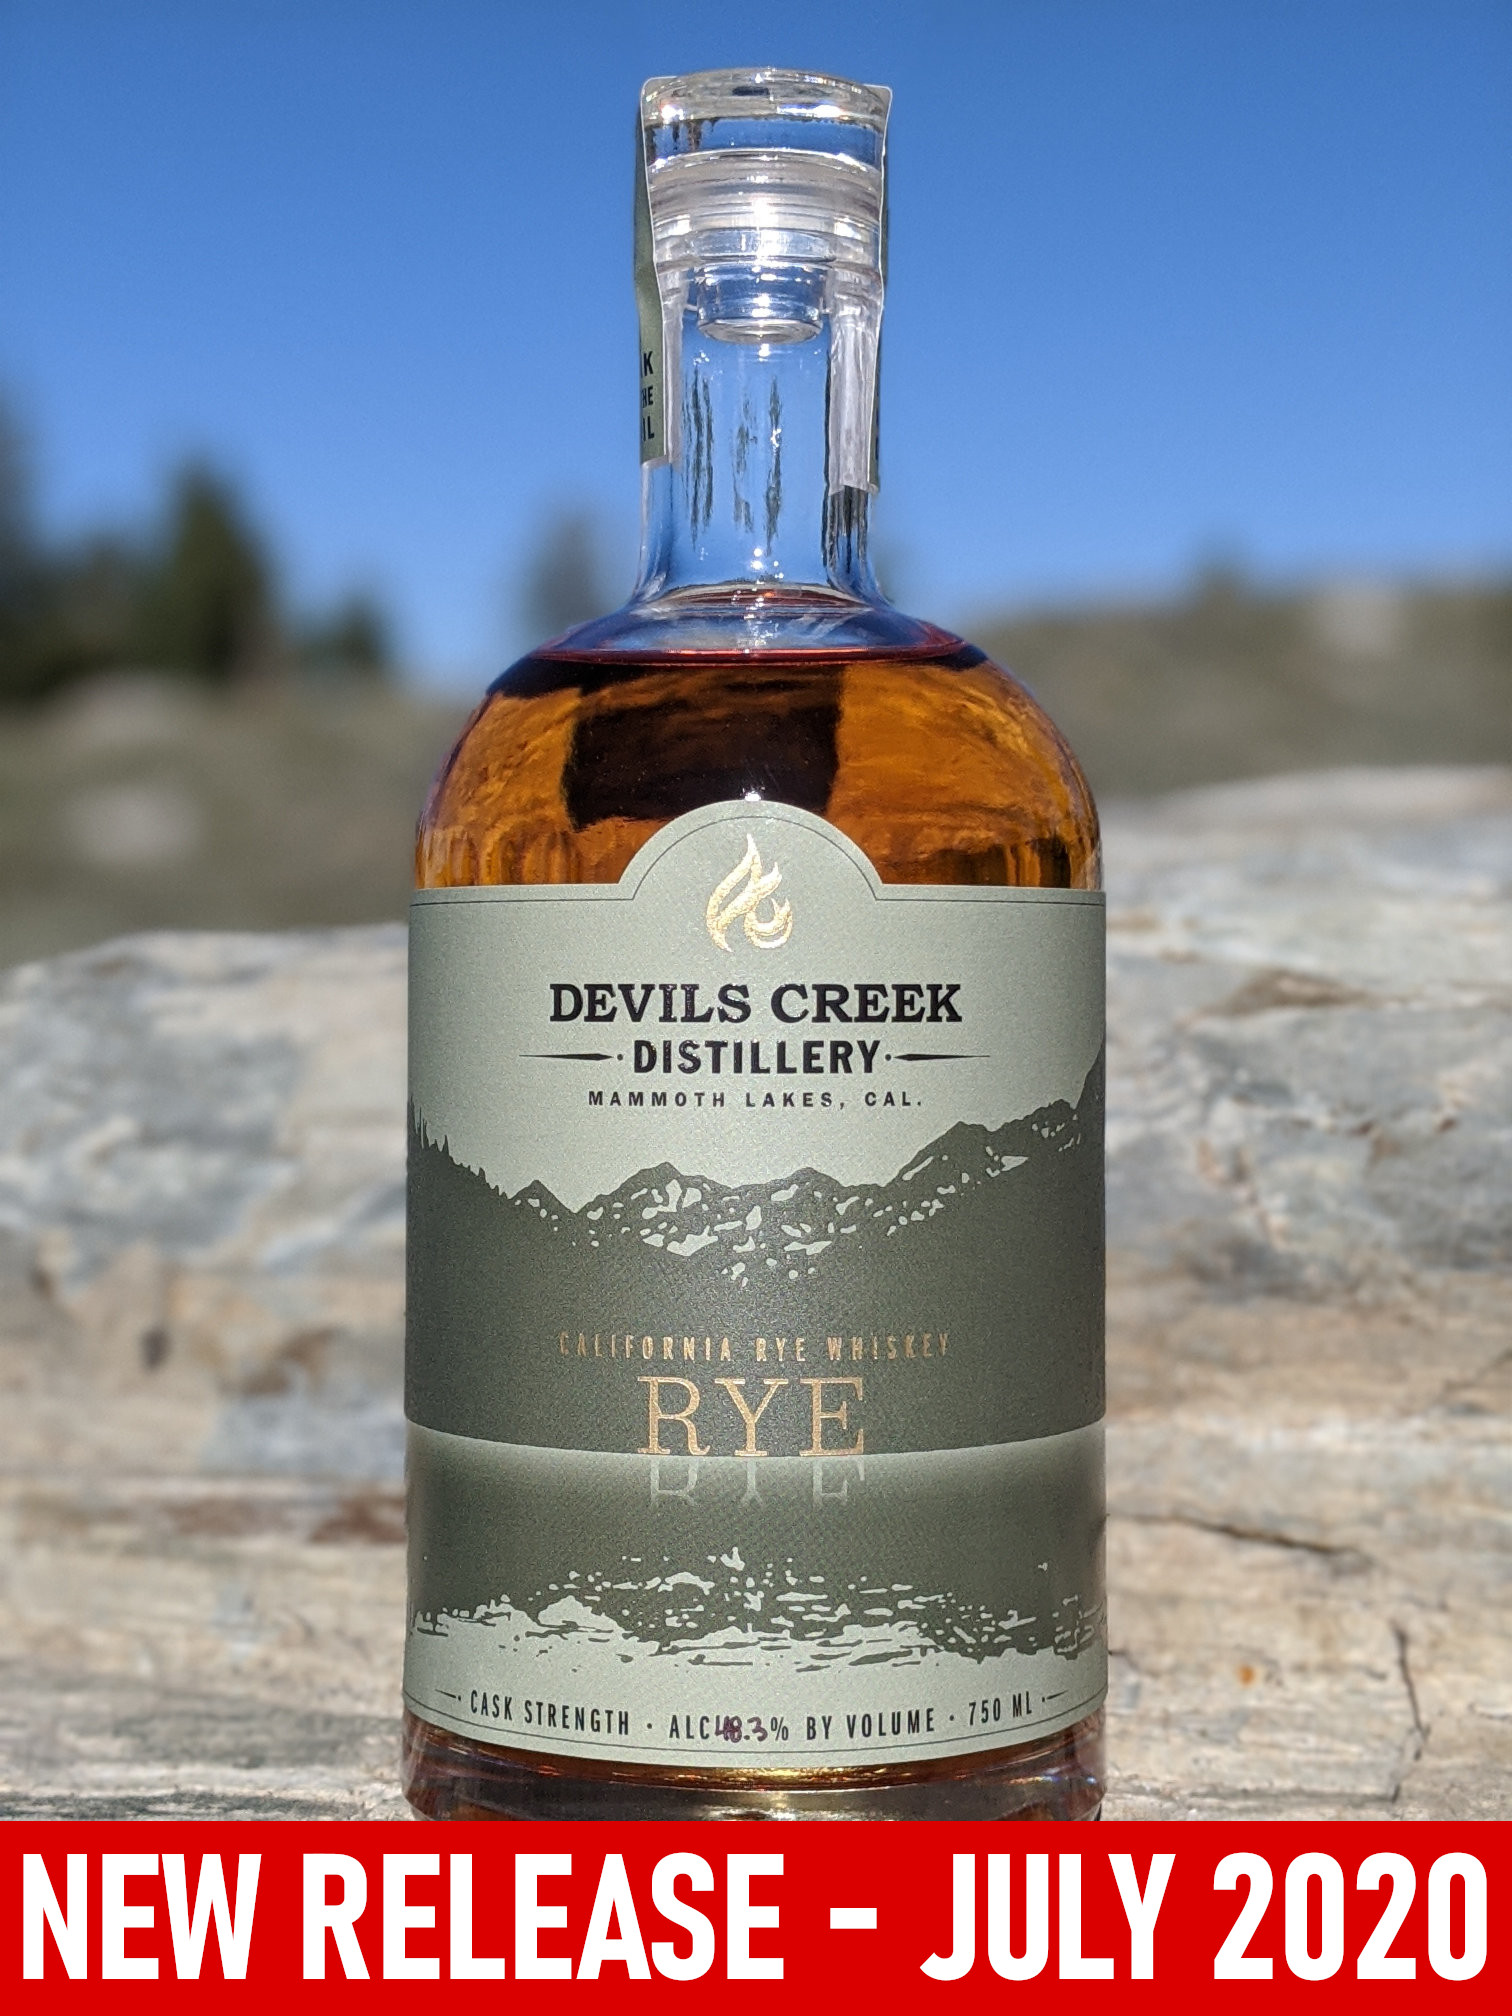 California Rye Whiskey